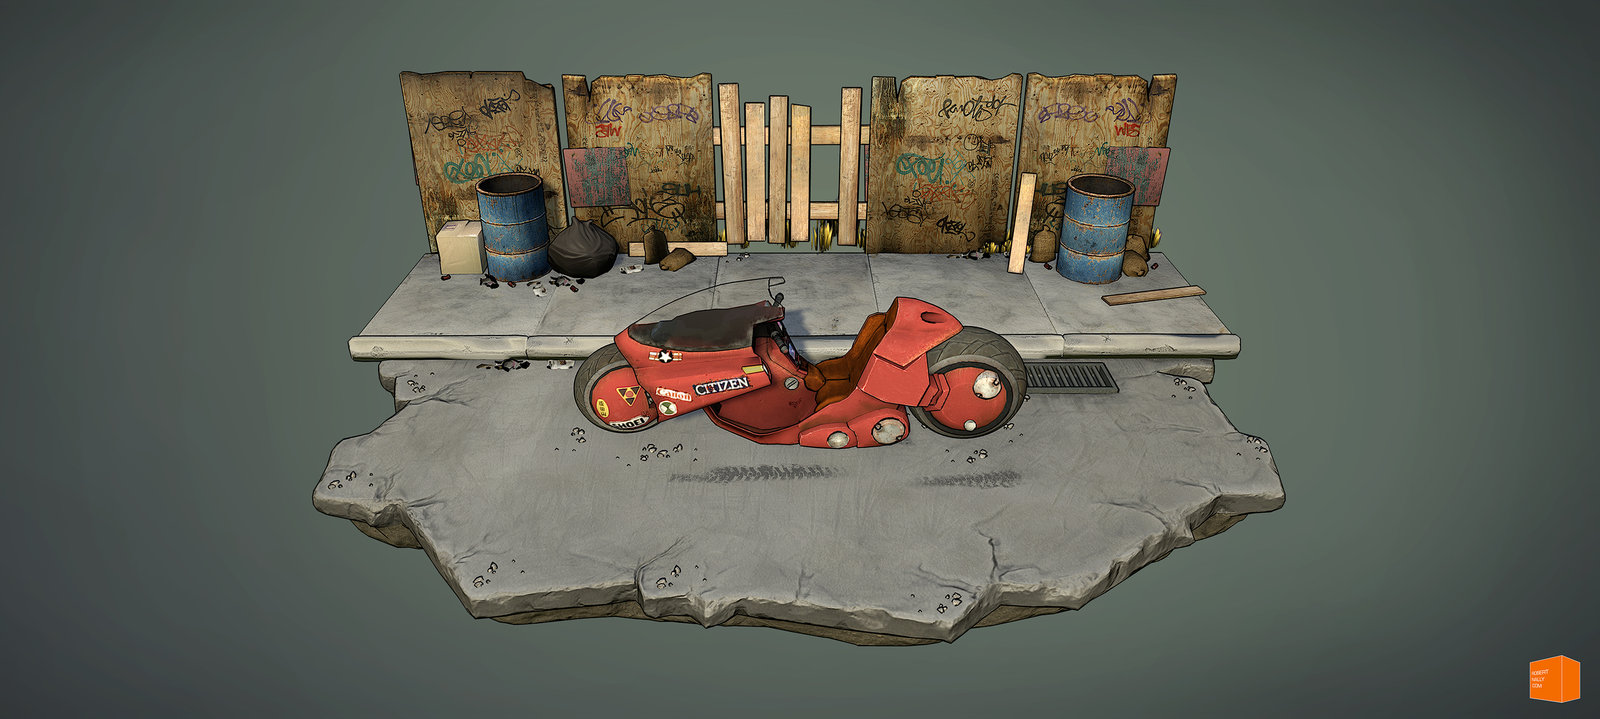 Fan Art of Kaneda's Bike from Akira